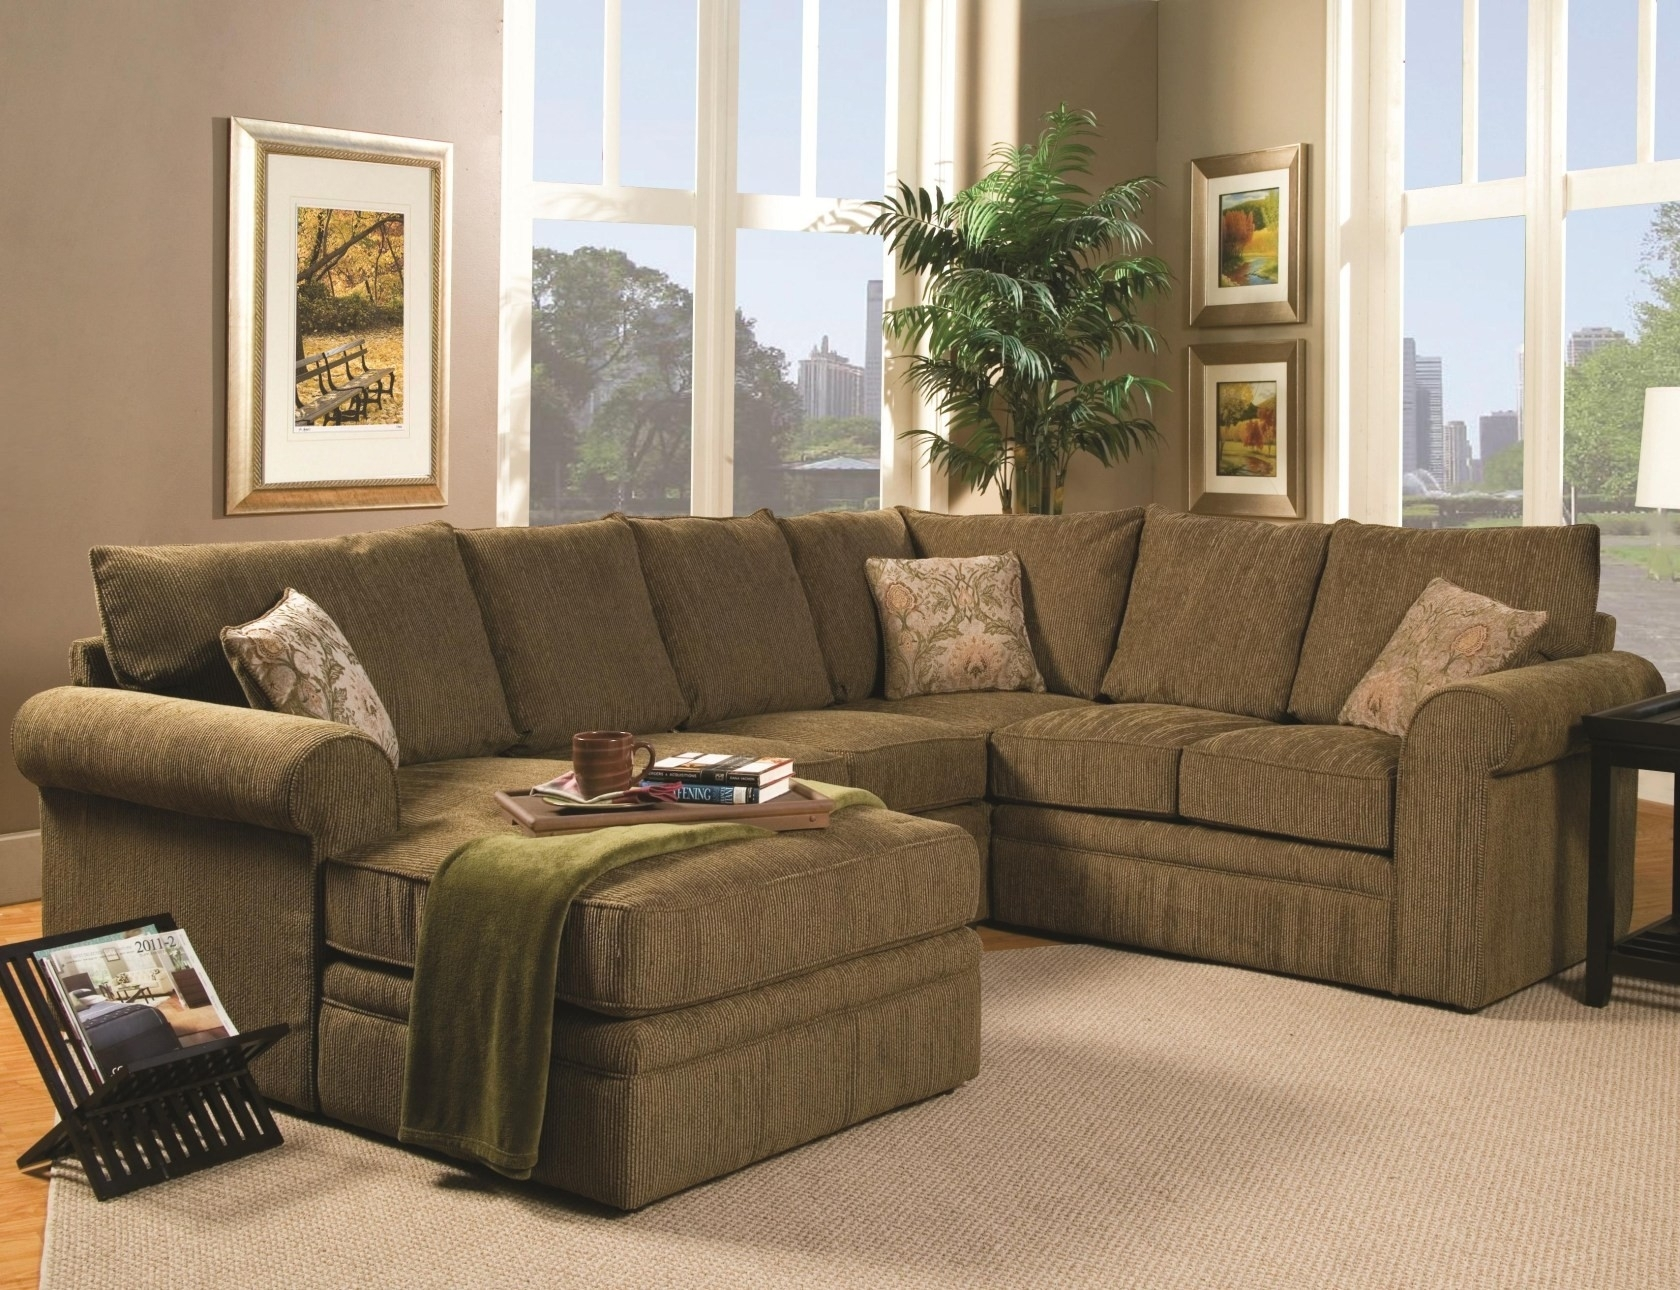 10 Best Collection Of Sectional Sofas In Charlotte Nc